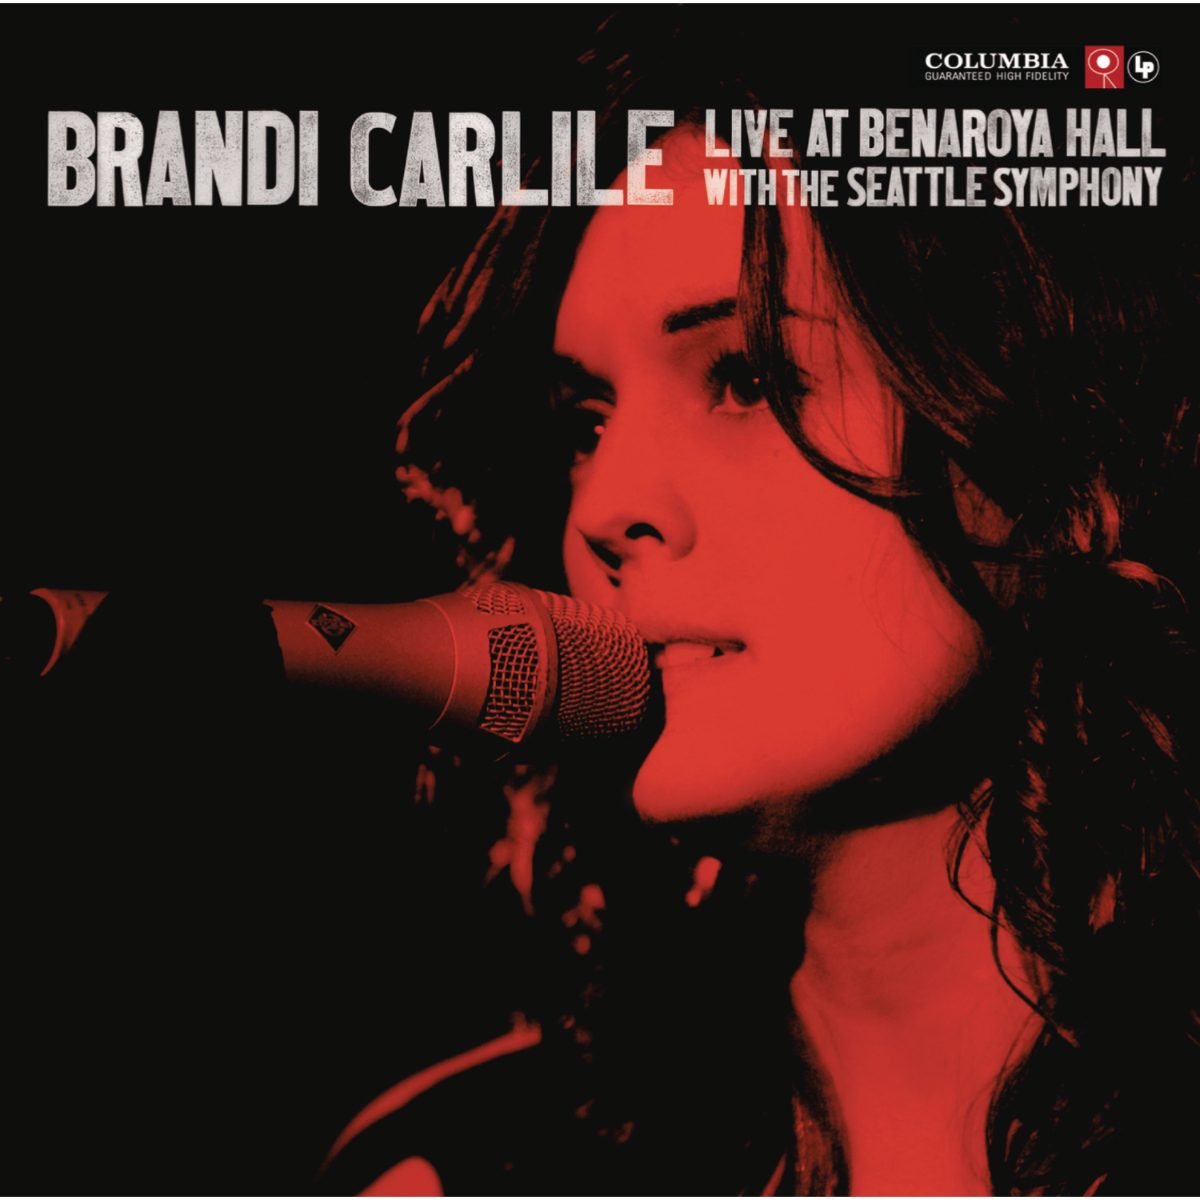 Live at Benaroya Hall with the Seattle Symphony CD